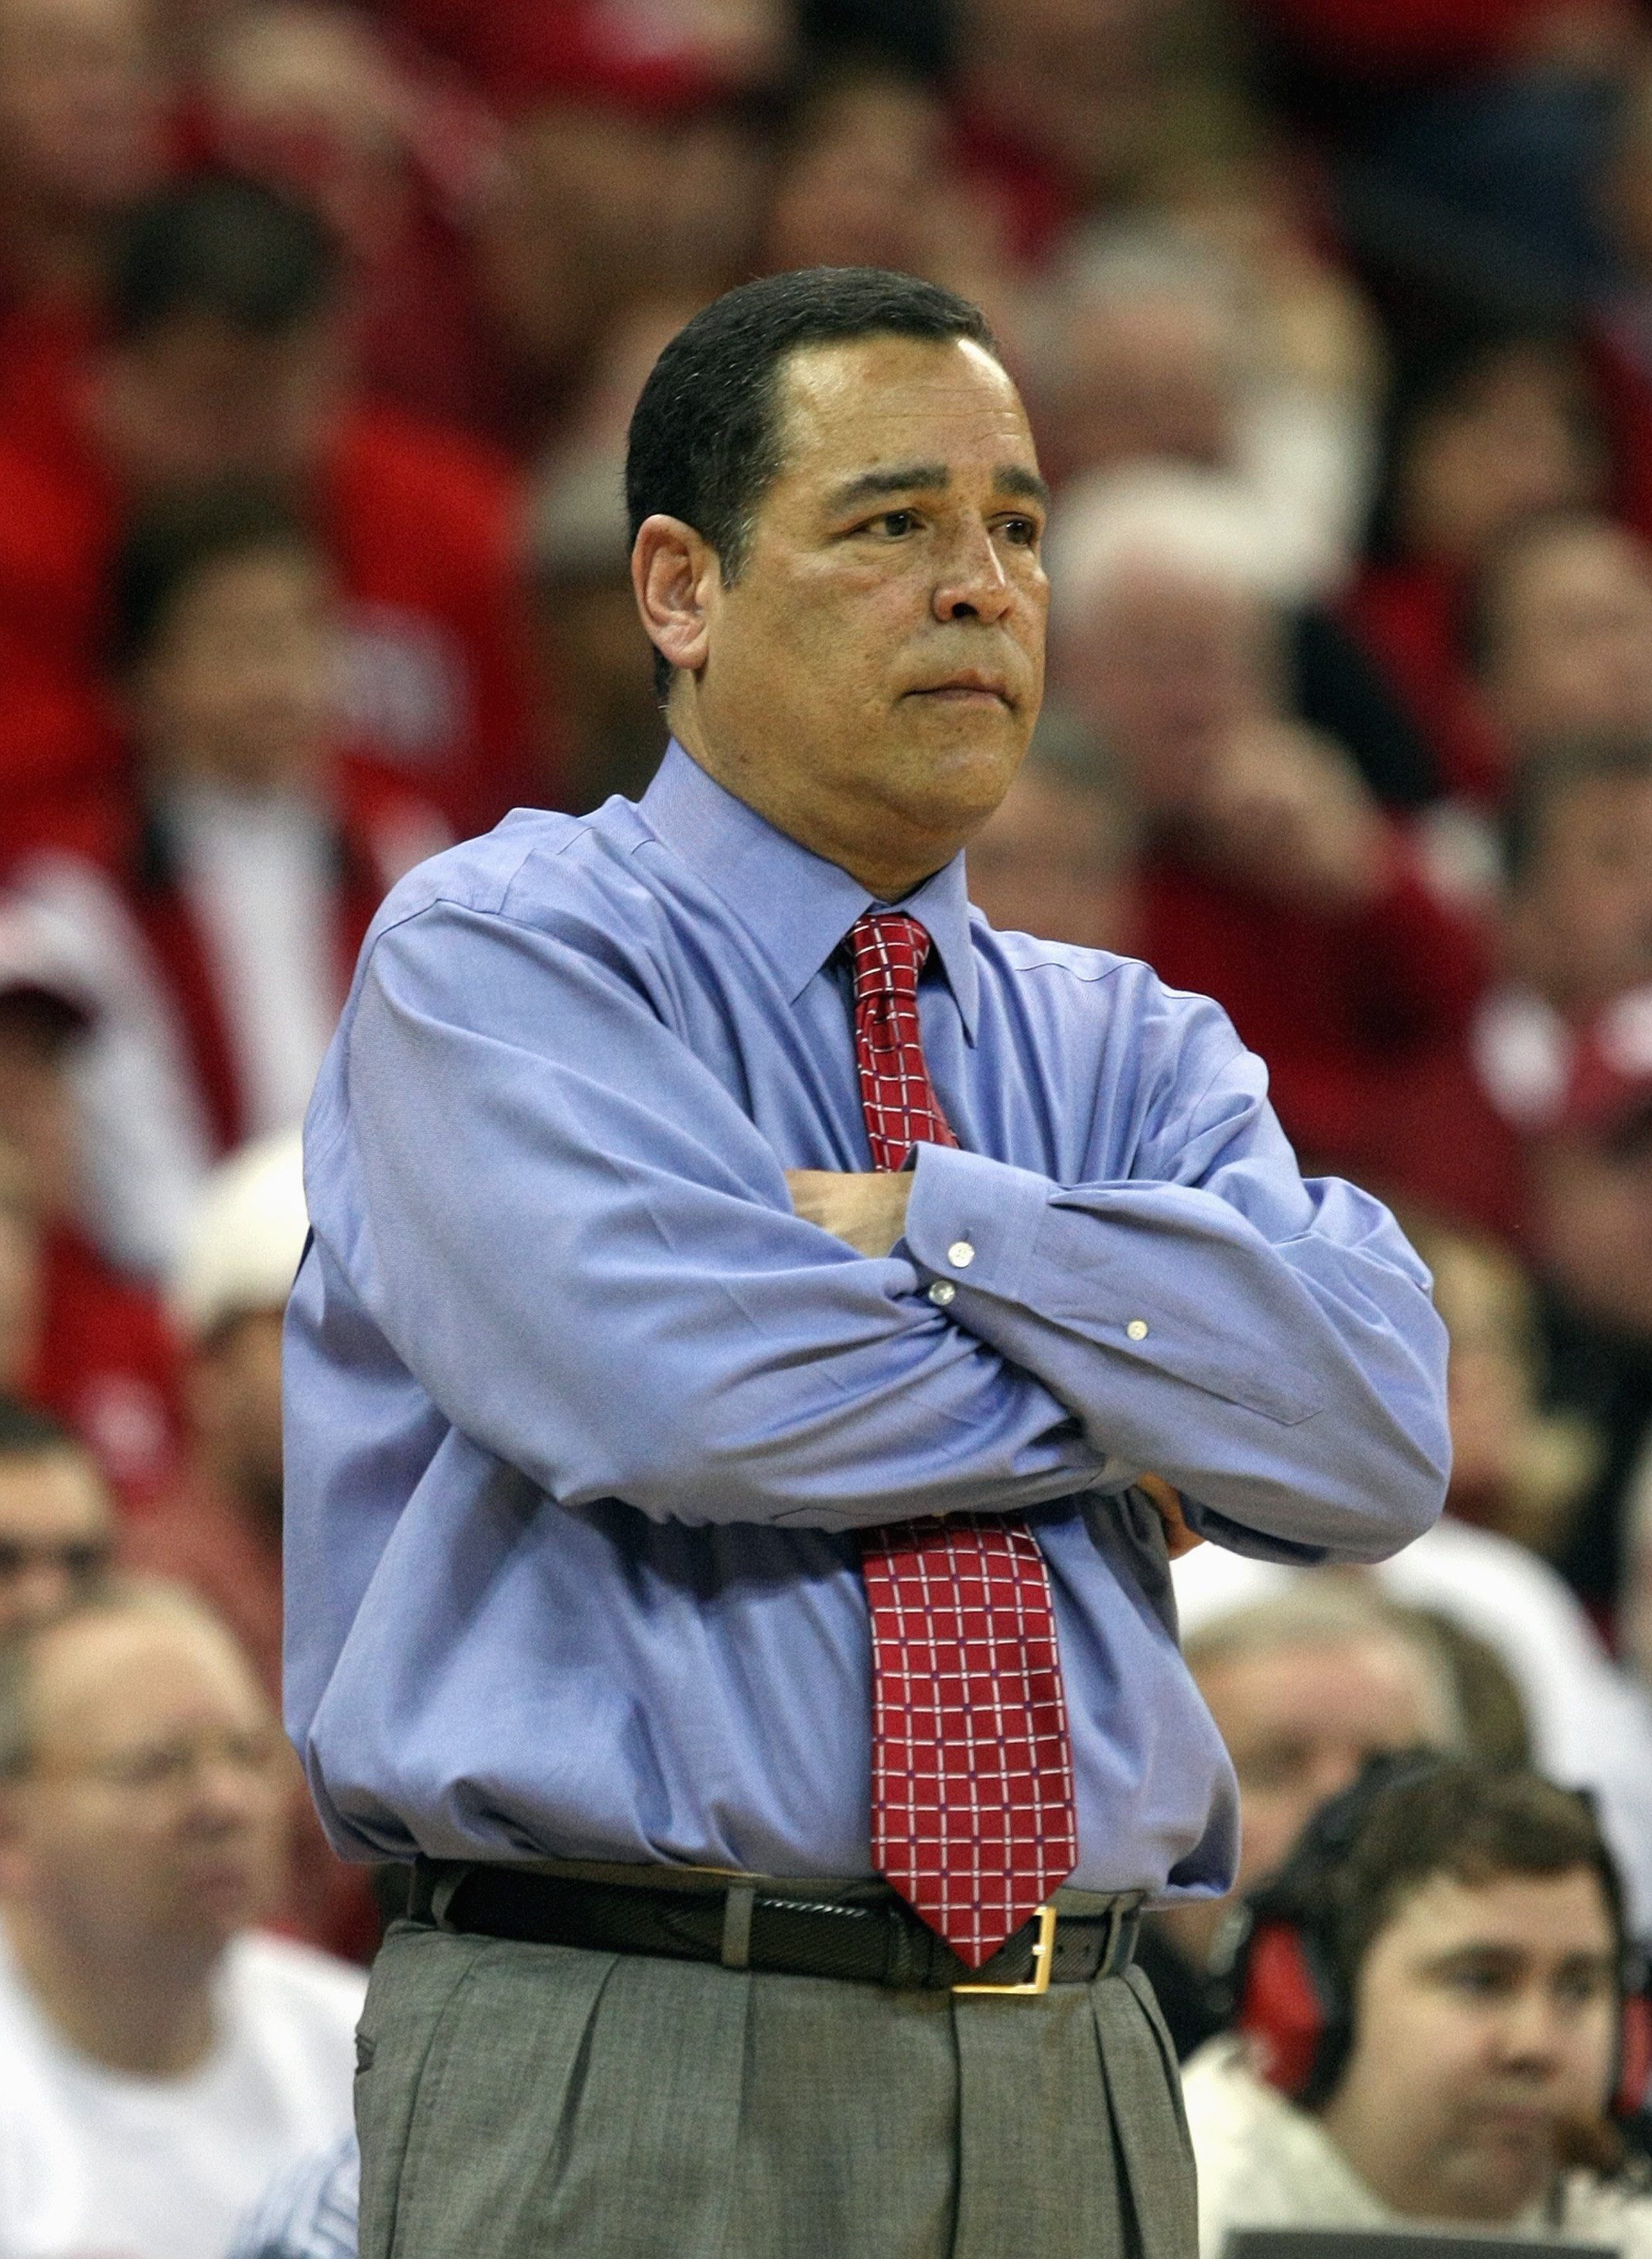 MADISON, WI - JANUARY 31: Head coach Kelvin Sampson of the Indana Hoosiers watches the action against the Wisconsin Badgers on January 31, 2008 at the Kohl Center in Madison, Wisconsin. Wisconsin defeated Indiana 62-49. (Photo by Jonathan Daniel/Getty Ima